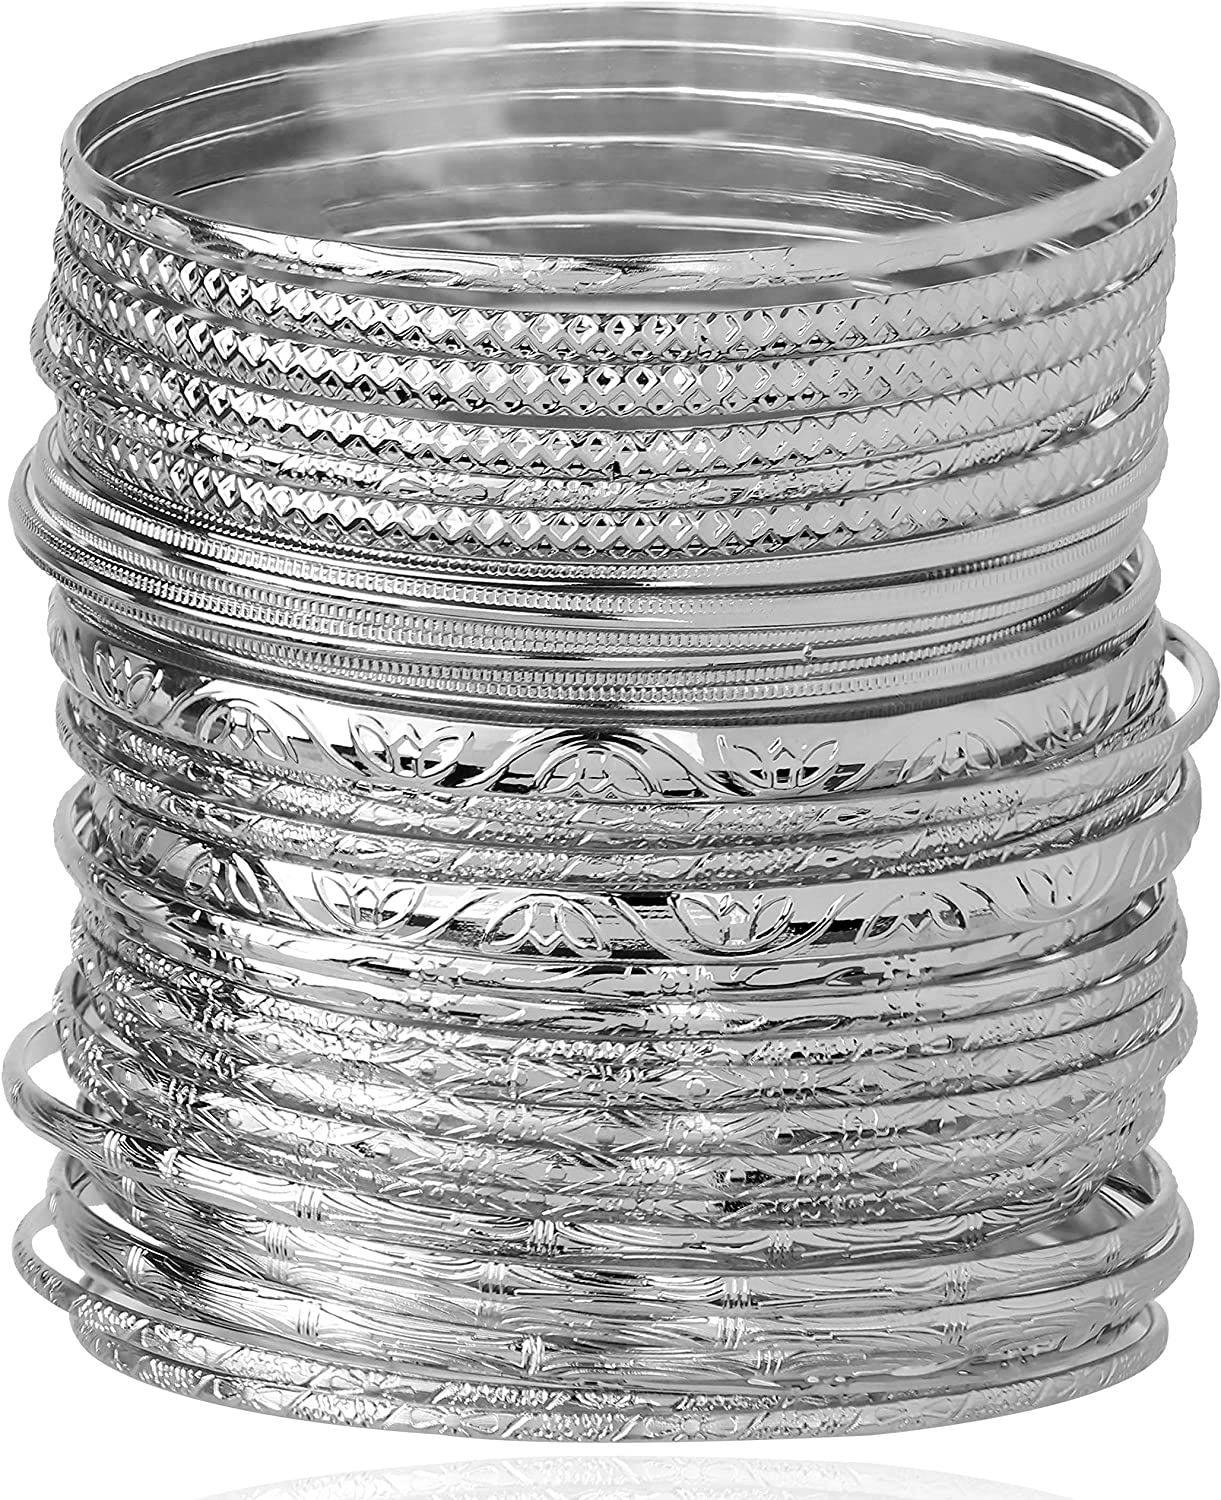 Lux Accessories Textured Heart Moon Infinity Multi Bangle Set (30 PC)